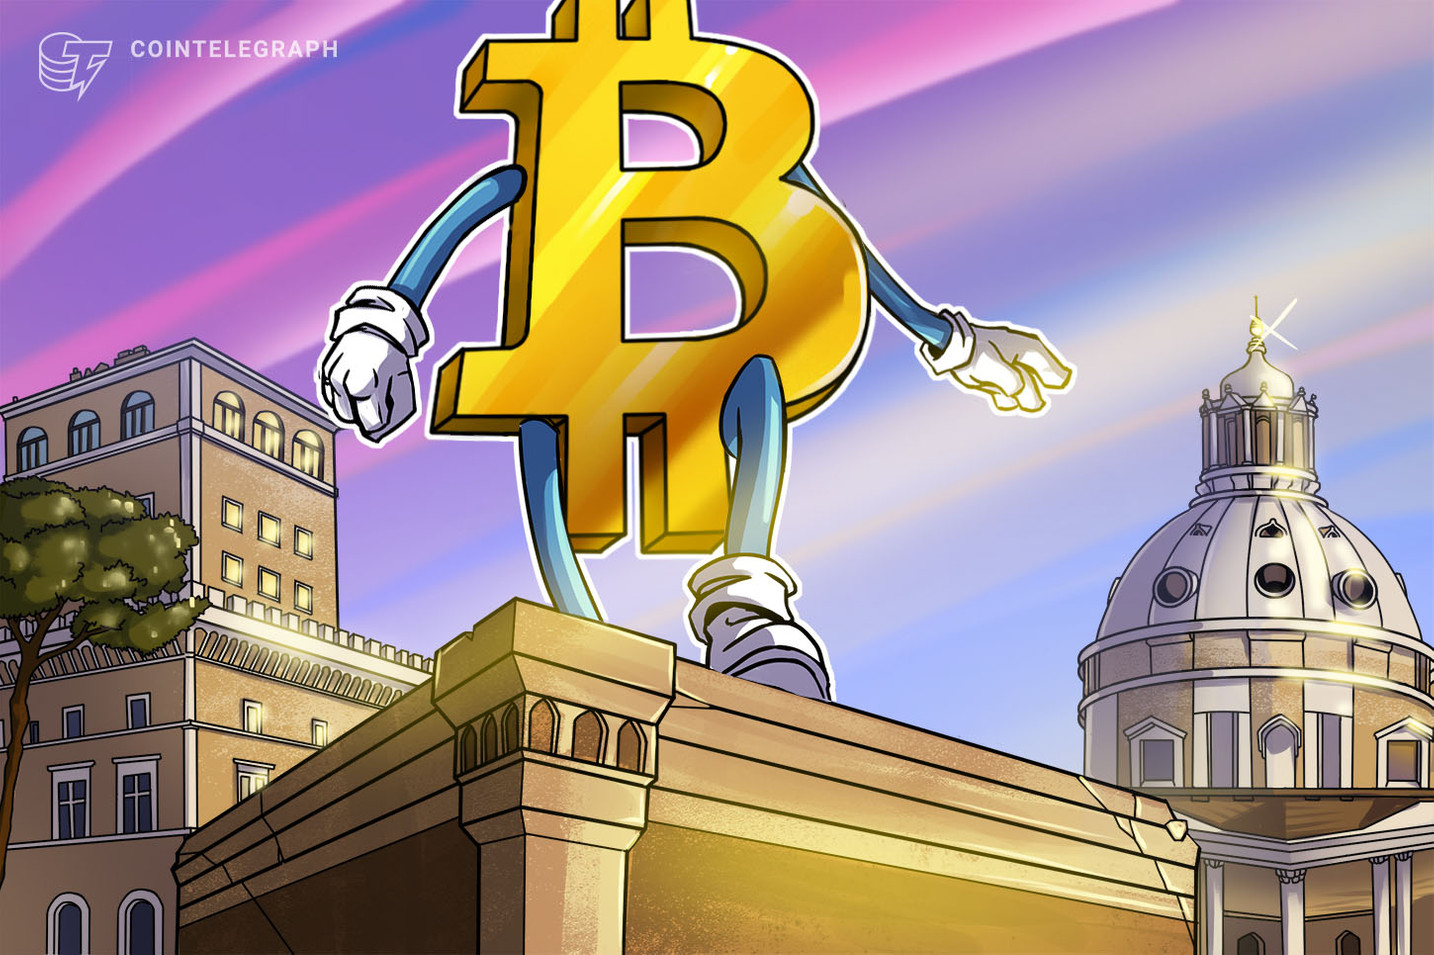 Italian Bank Opens Bitcoin Trading to 1.2 Million During Lockdown